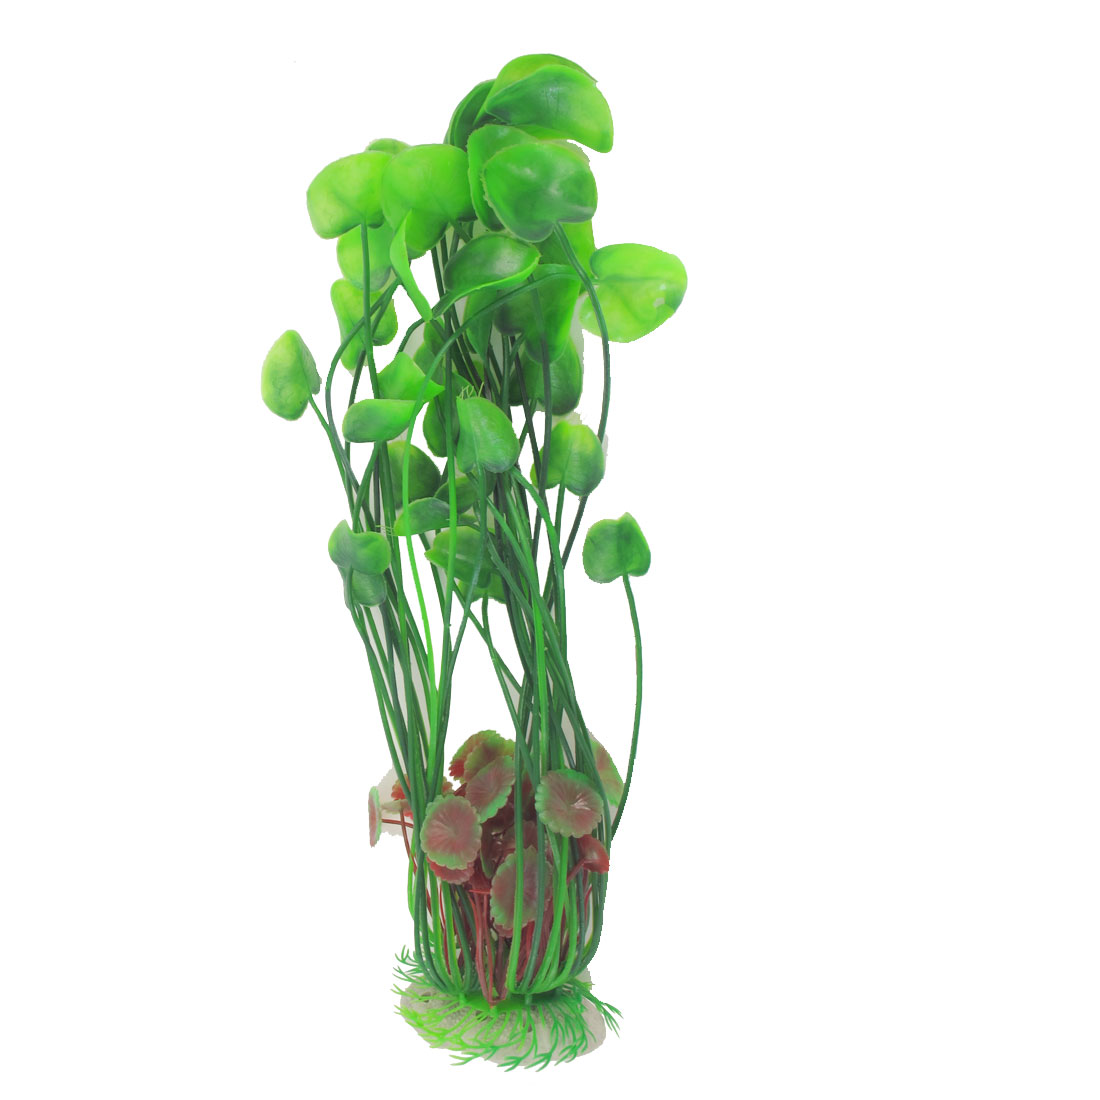 "15.4"" High Green Artificial Plastic Plant Underwater Grass for Fish Tank"